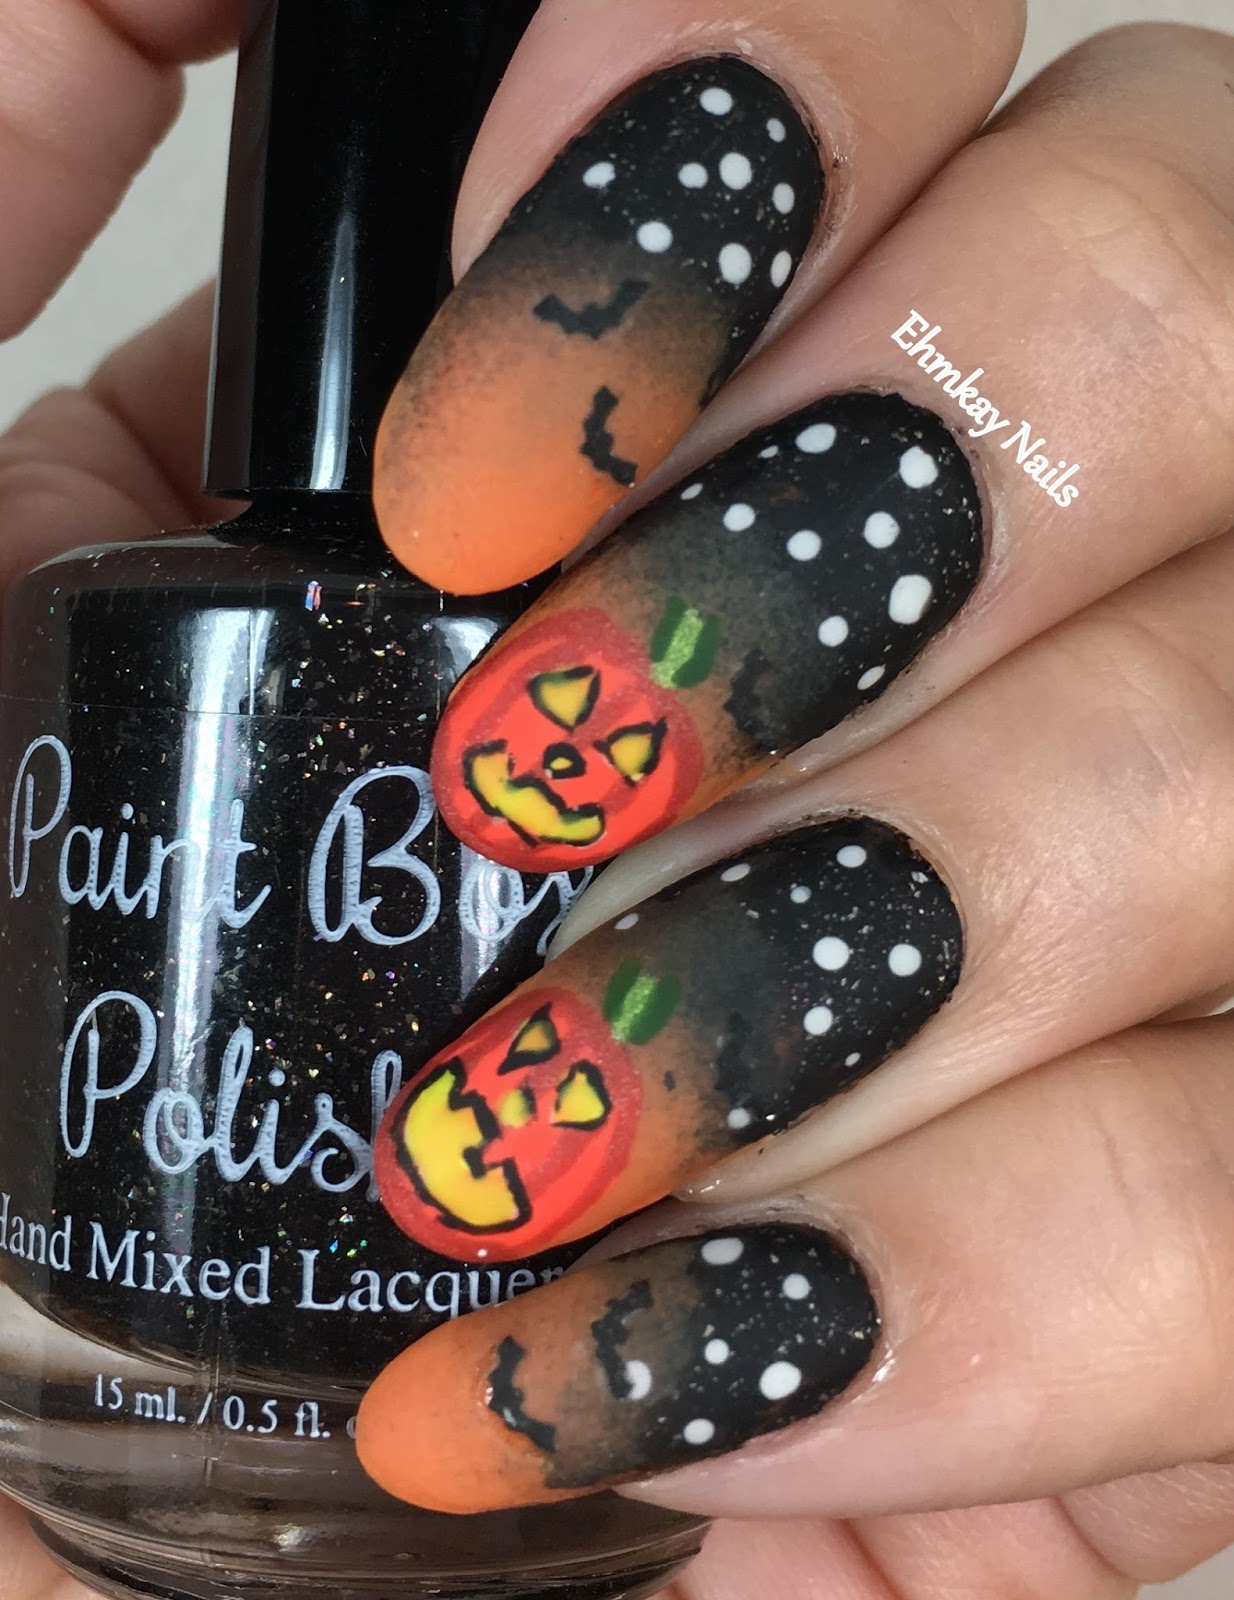 Ehmkay nails halloween nail art glowing pumpkin nail art at the halloween nail art glowing pumpkin nail art at the great jack olantern blaze prinsesfo Choice Image